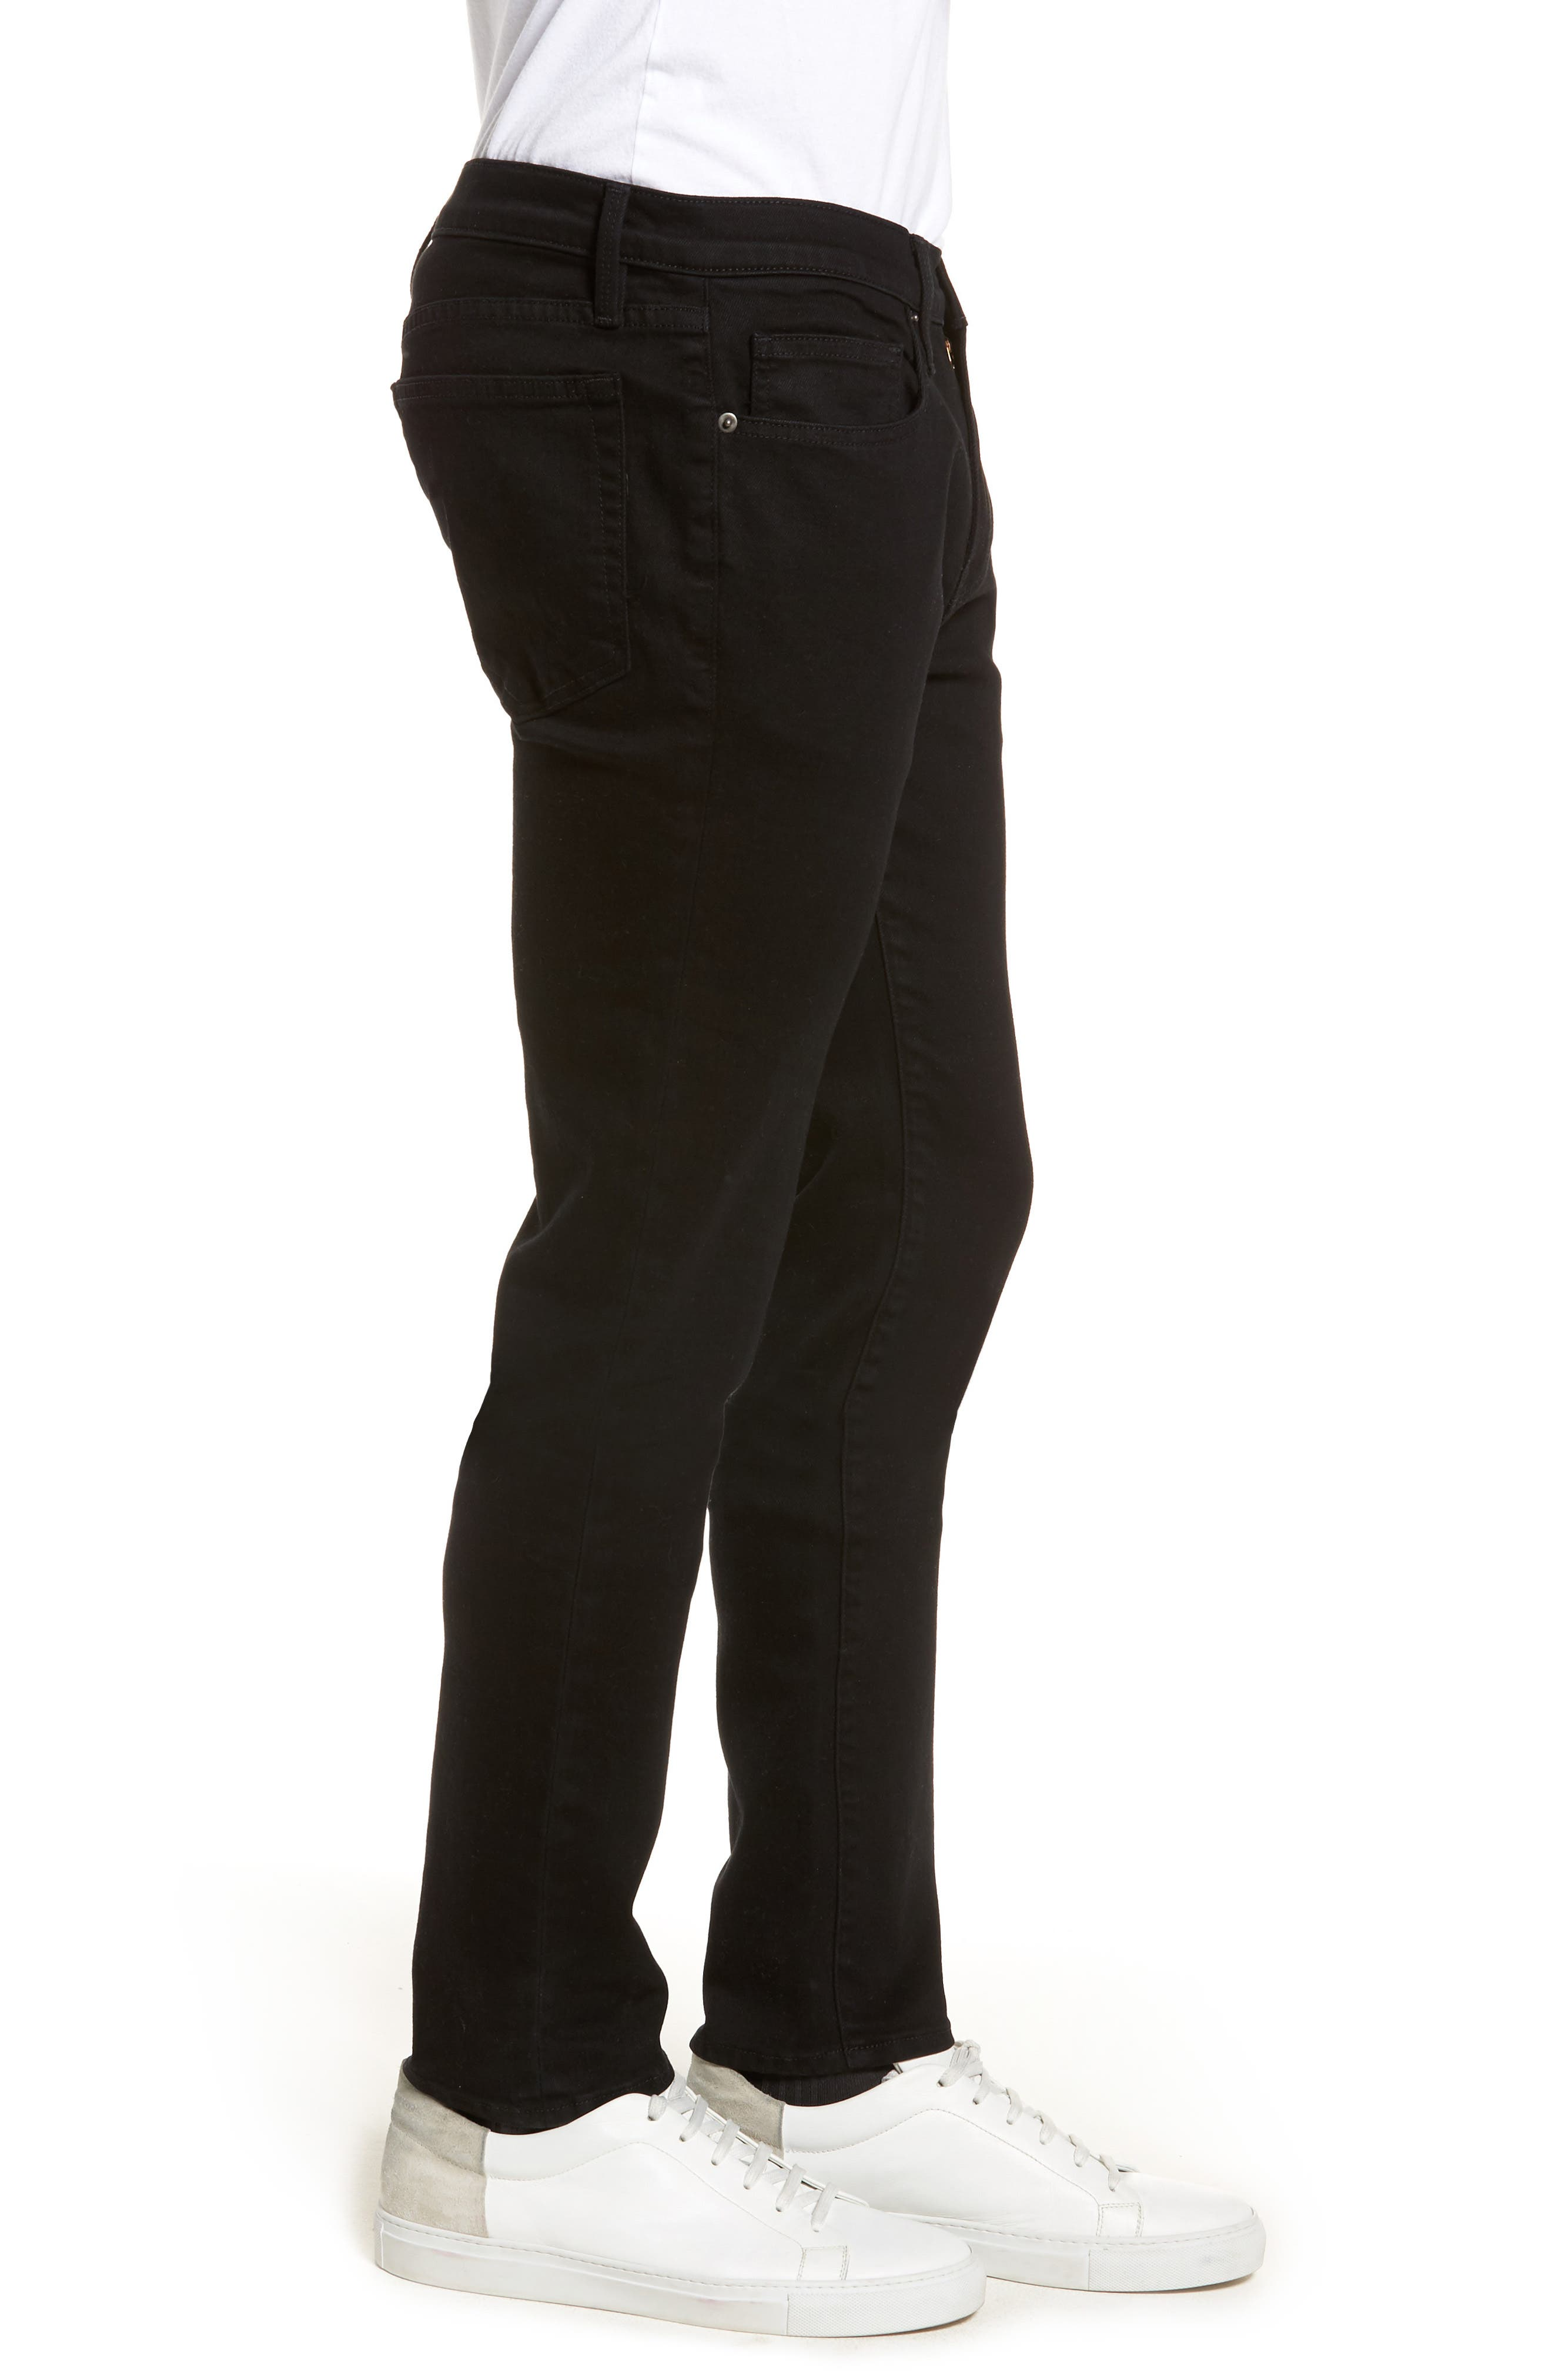 L'Homme Skinny Fit Jeans,                             Alternate thumbnail 3, color,                             NOIR